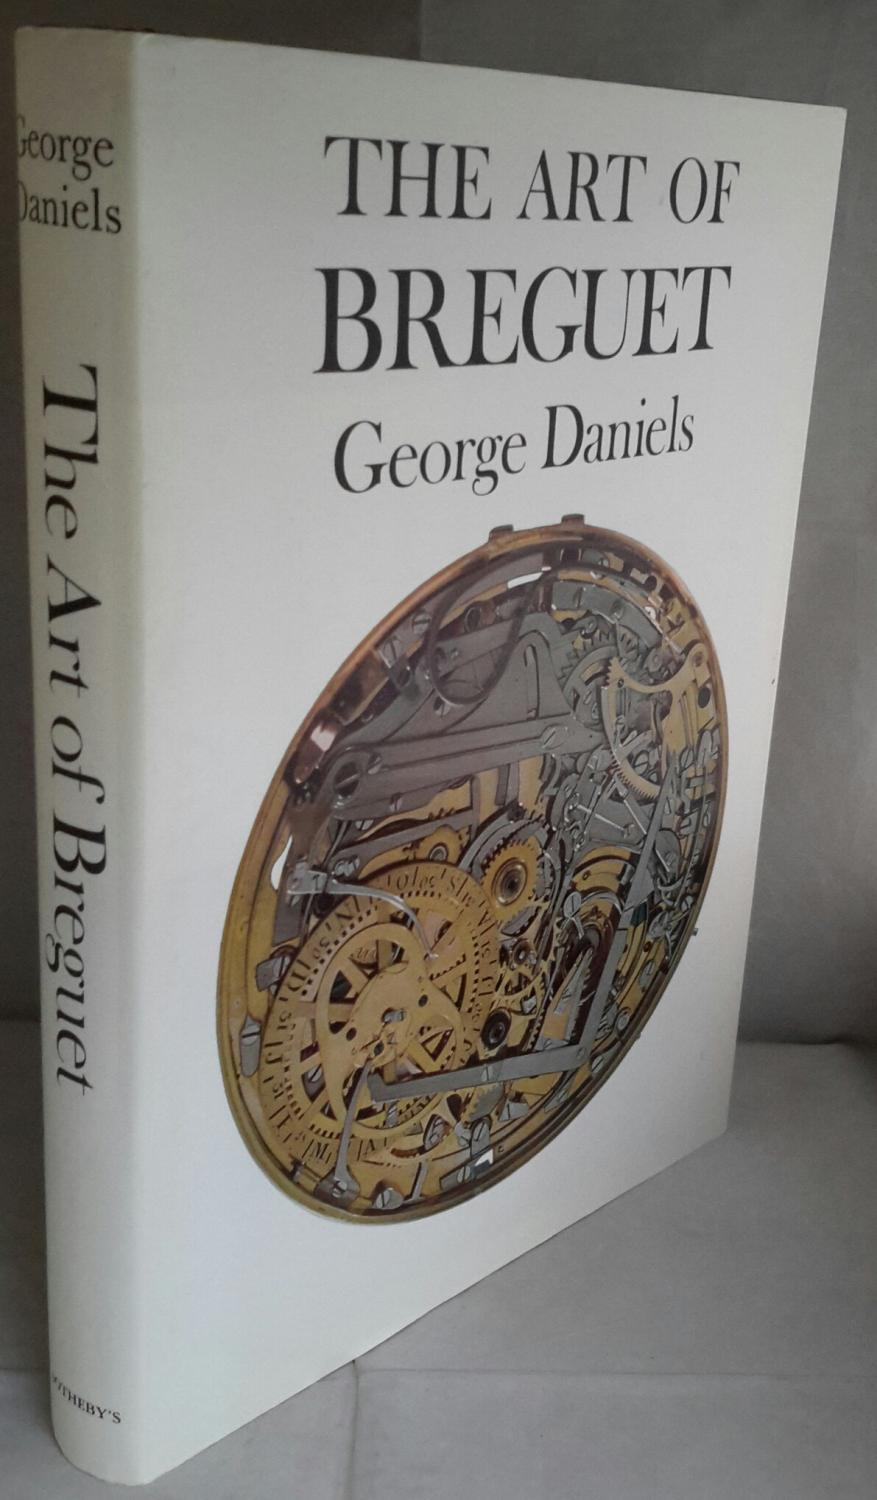 The Art of Breguet. (BREGUET). DANIELS, George. [ ] [Couverture rigide] Sotheby's Publications, London. 1986. Third impression. Hardback with DW. Large 4to. Illustrated throughout. A beautifully clean and fresh copy in partially sunned and very slightly soiled wrapper.